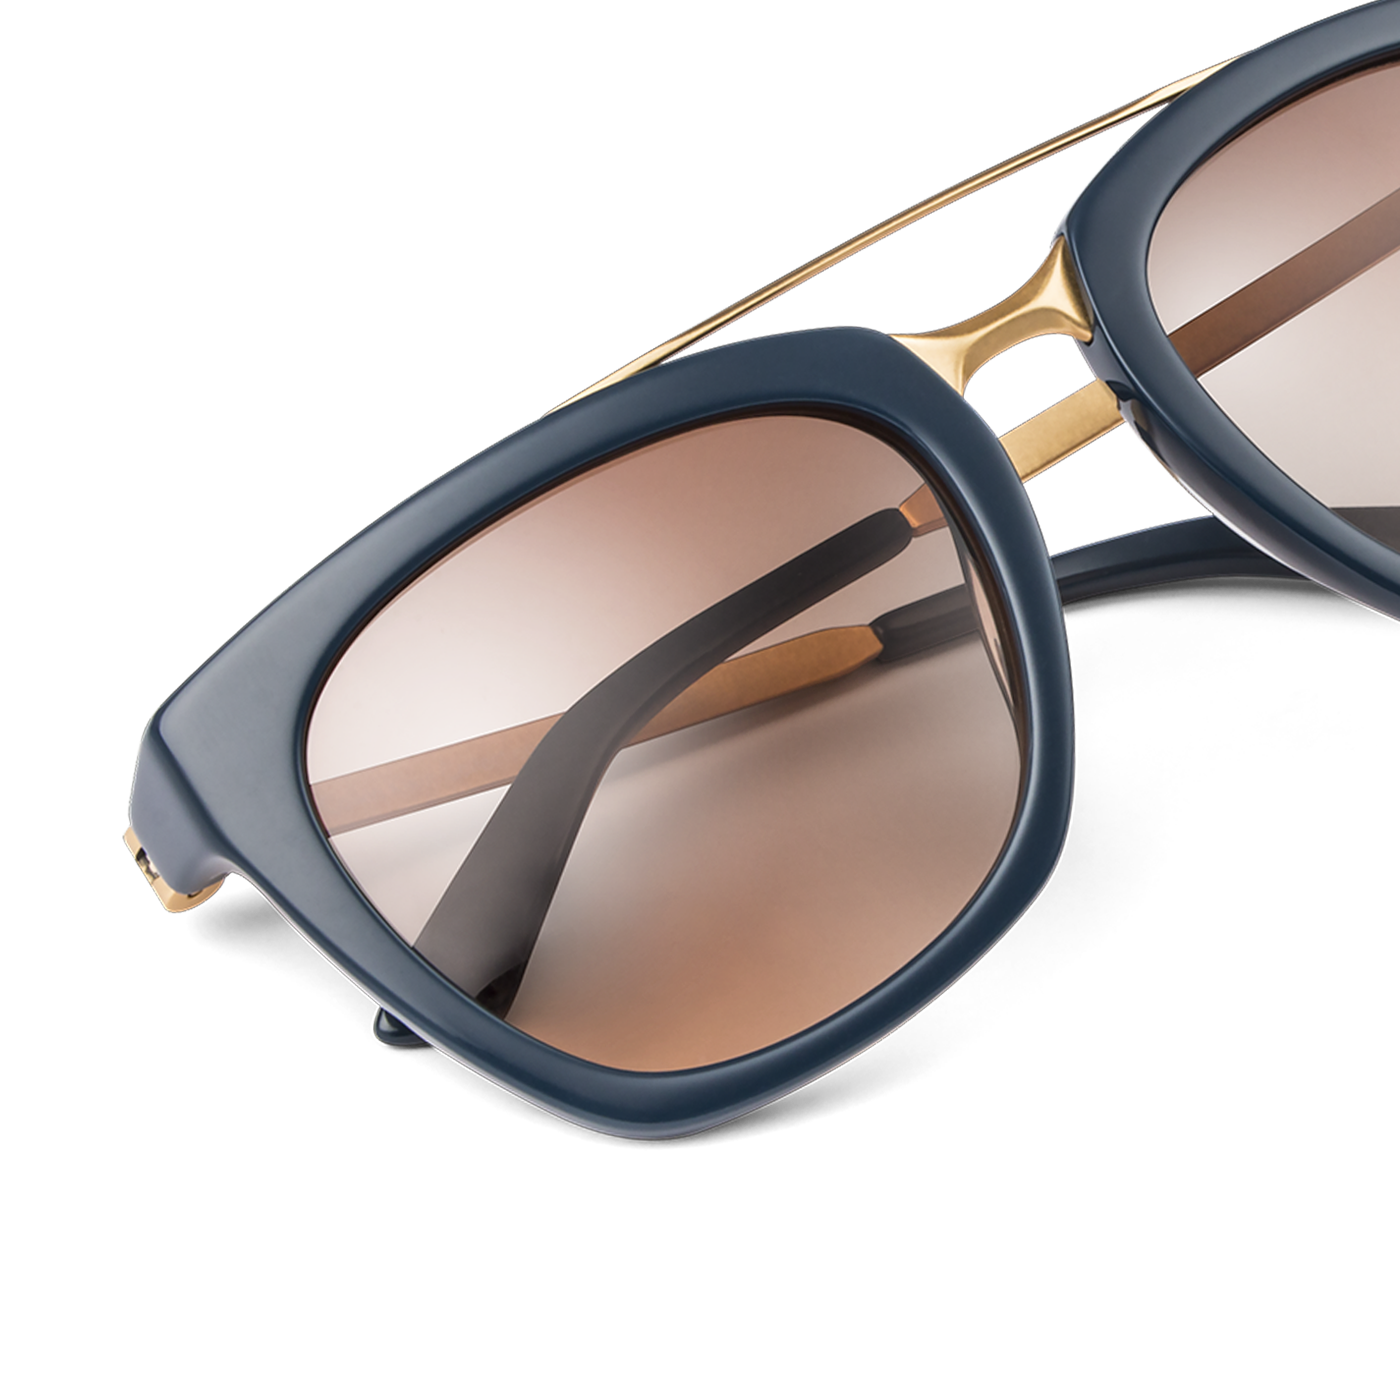 Clip sunglasses designer. Browse marchon eyeglass frames